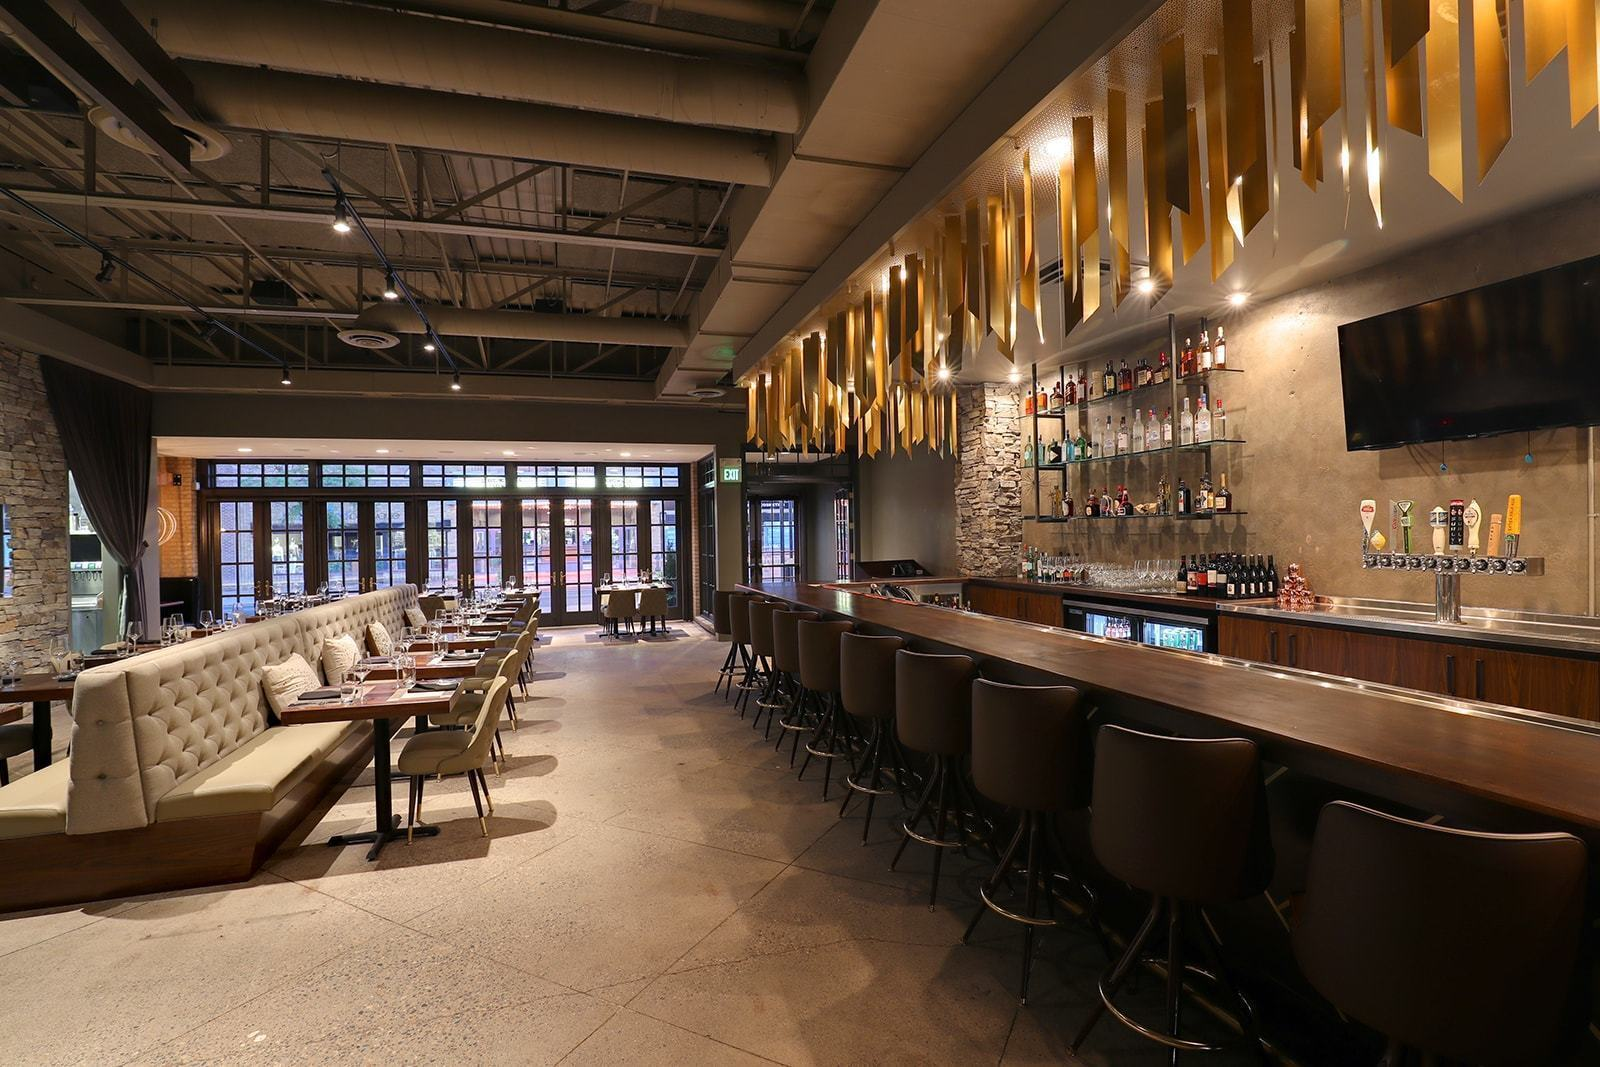 A view of the bar the dining area at Moderna Kouzina in Edina, Minnesota, by Diversified Construction.